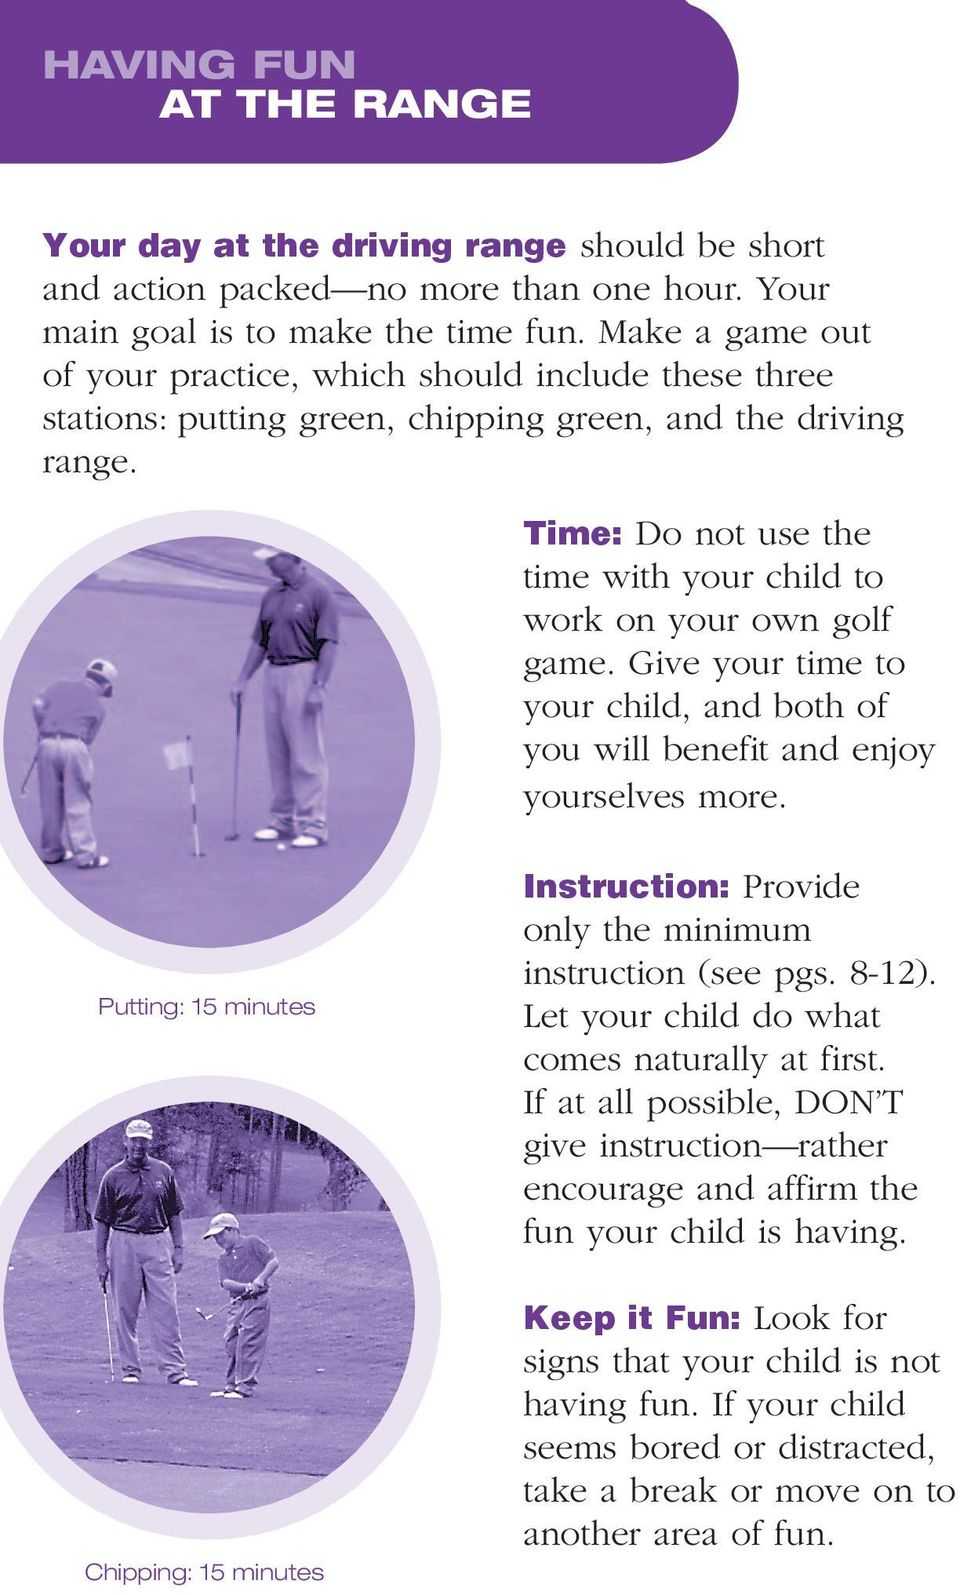 Time: Do not use the time with your child to work on your own golf game. Give your time to your child, and both of you will benefit and enjoy yourselves more.